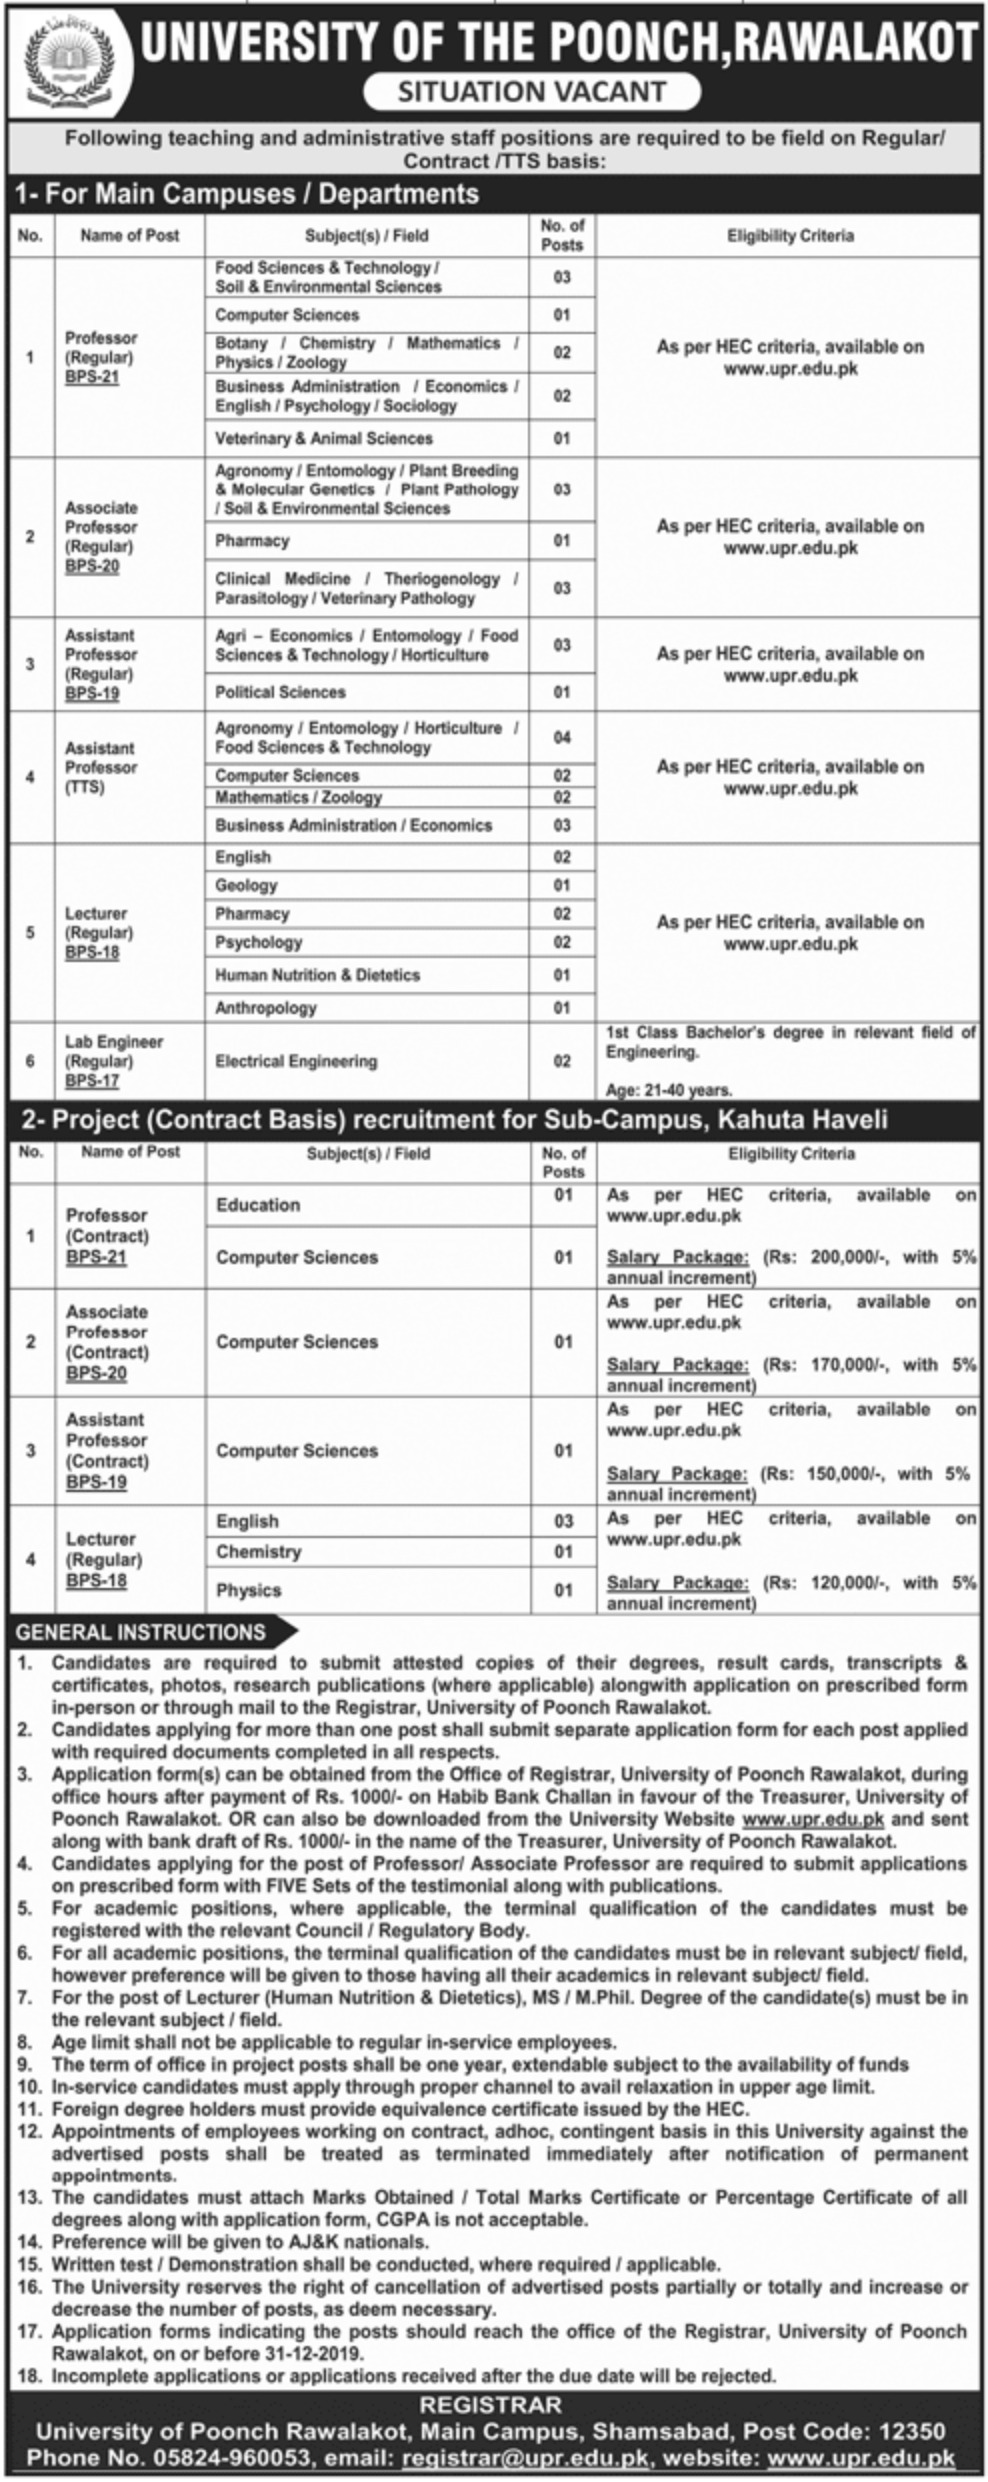 University of Poonch Rawalakot Jobs 2019 AJK